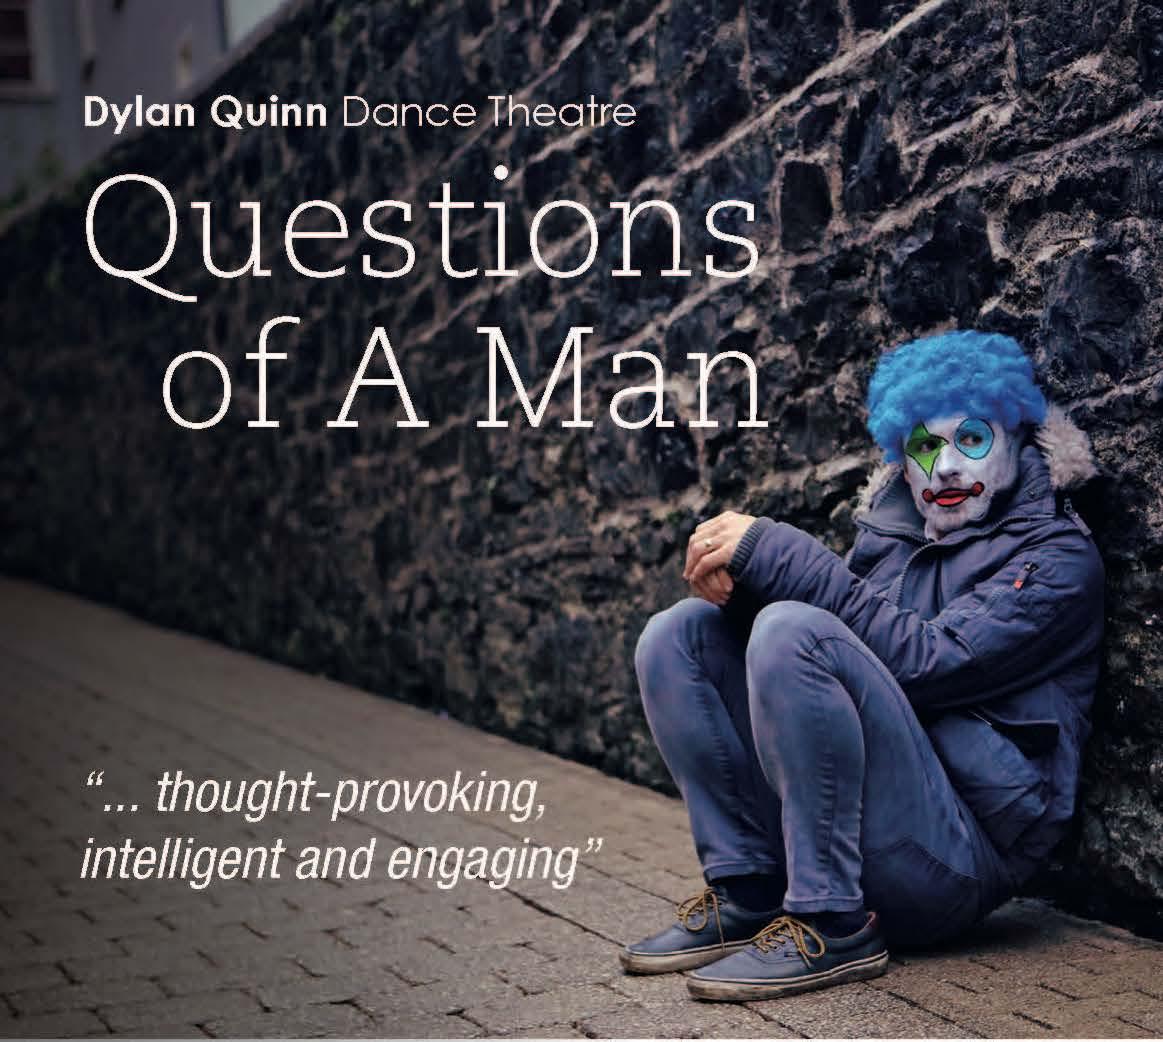 test Twitter Media - The Questions of A Man education project has been fascinating. Today we have been engaging young people in discussions exploring issues of consent and positive masculinity. We need more education like this!  Thank you to  @H4YNI for supporting this project #artsmatterNI https://t.co/UMAgO7t2n2